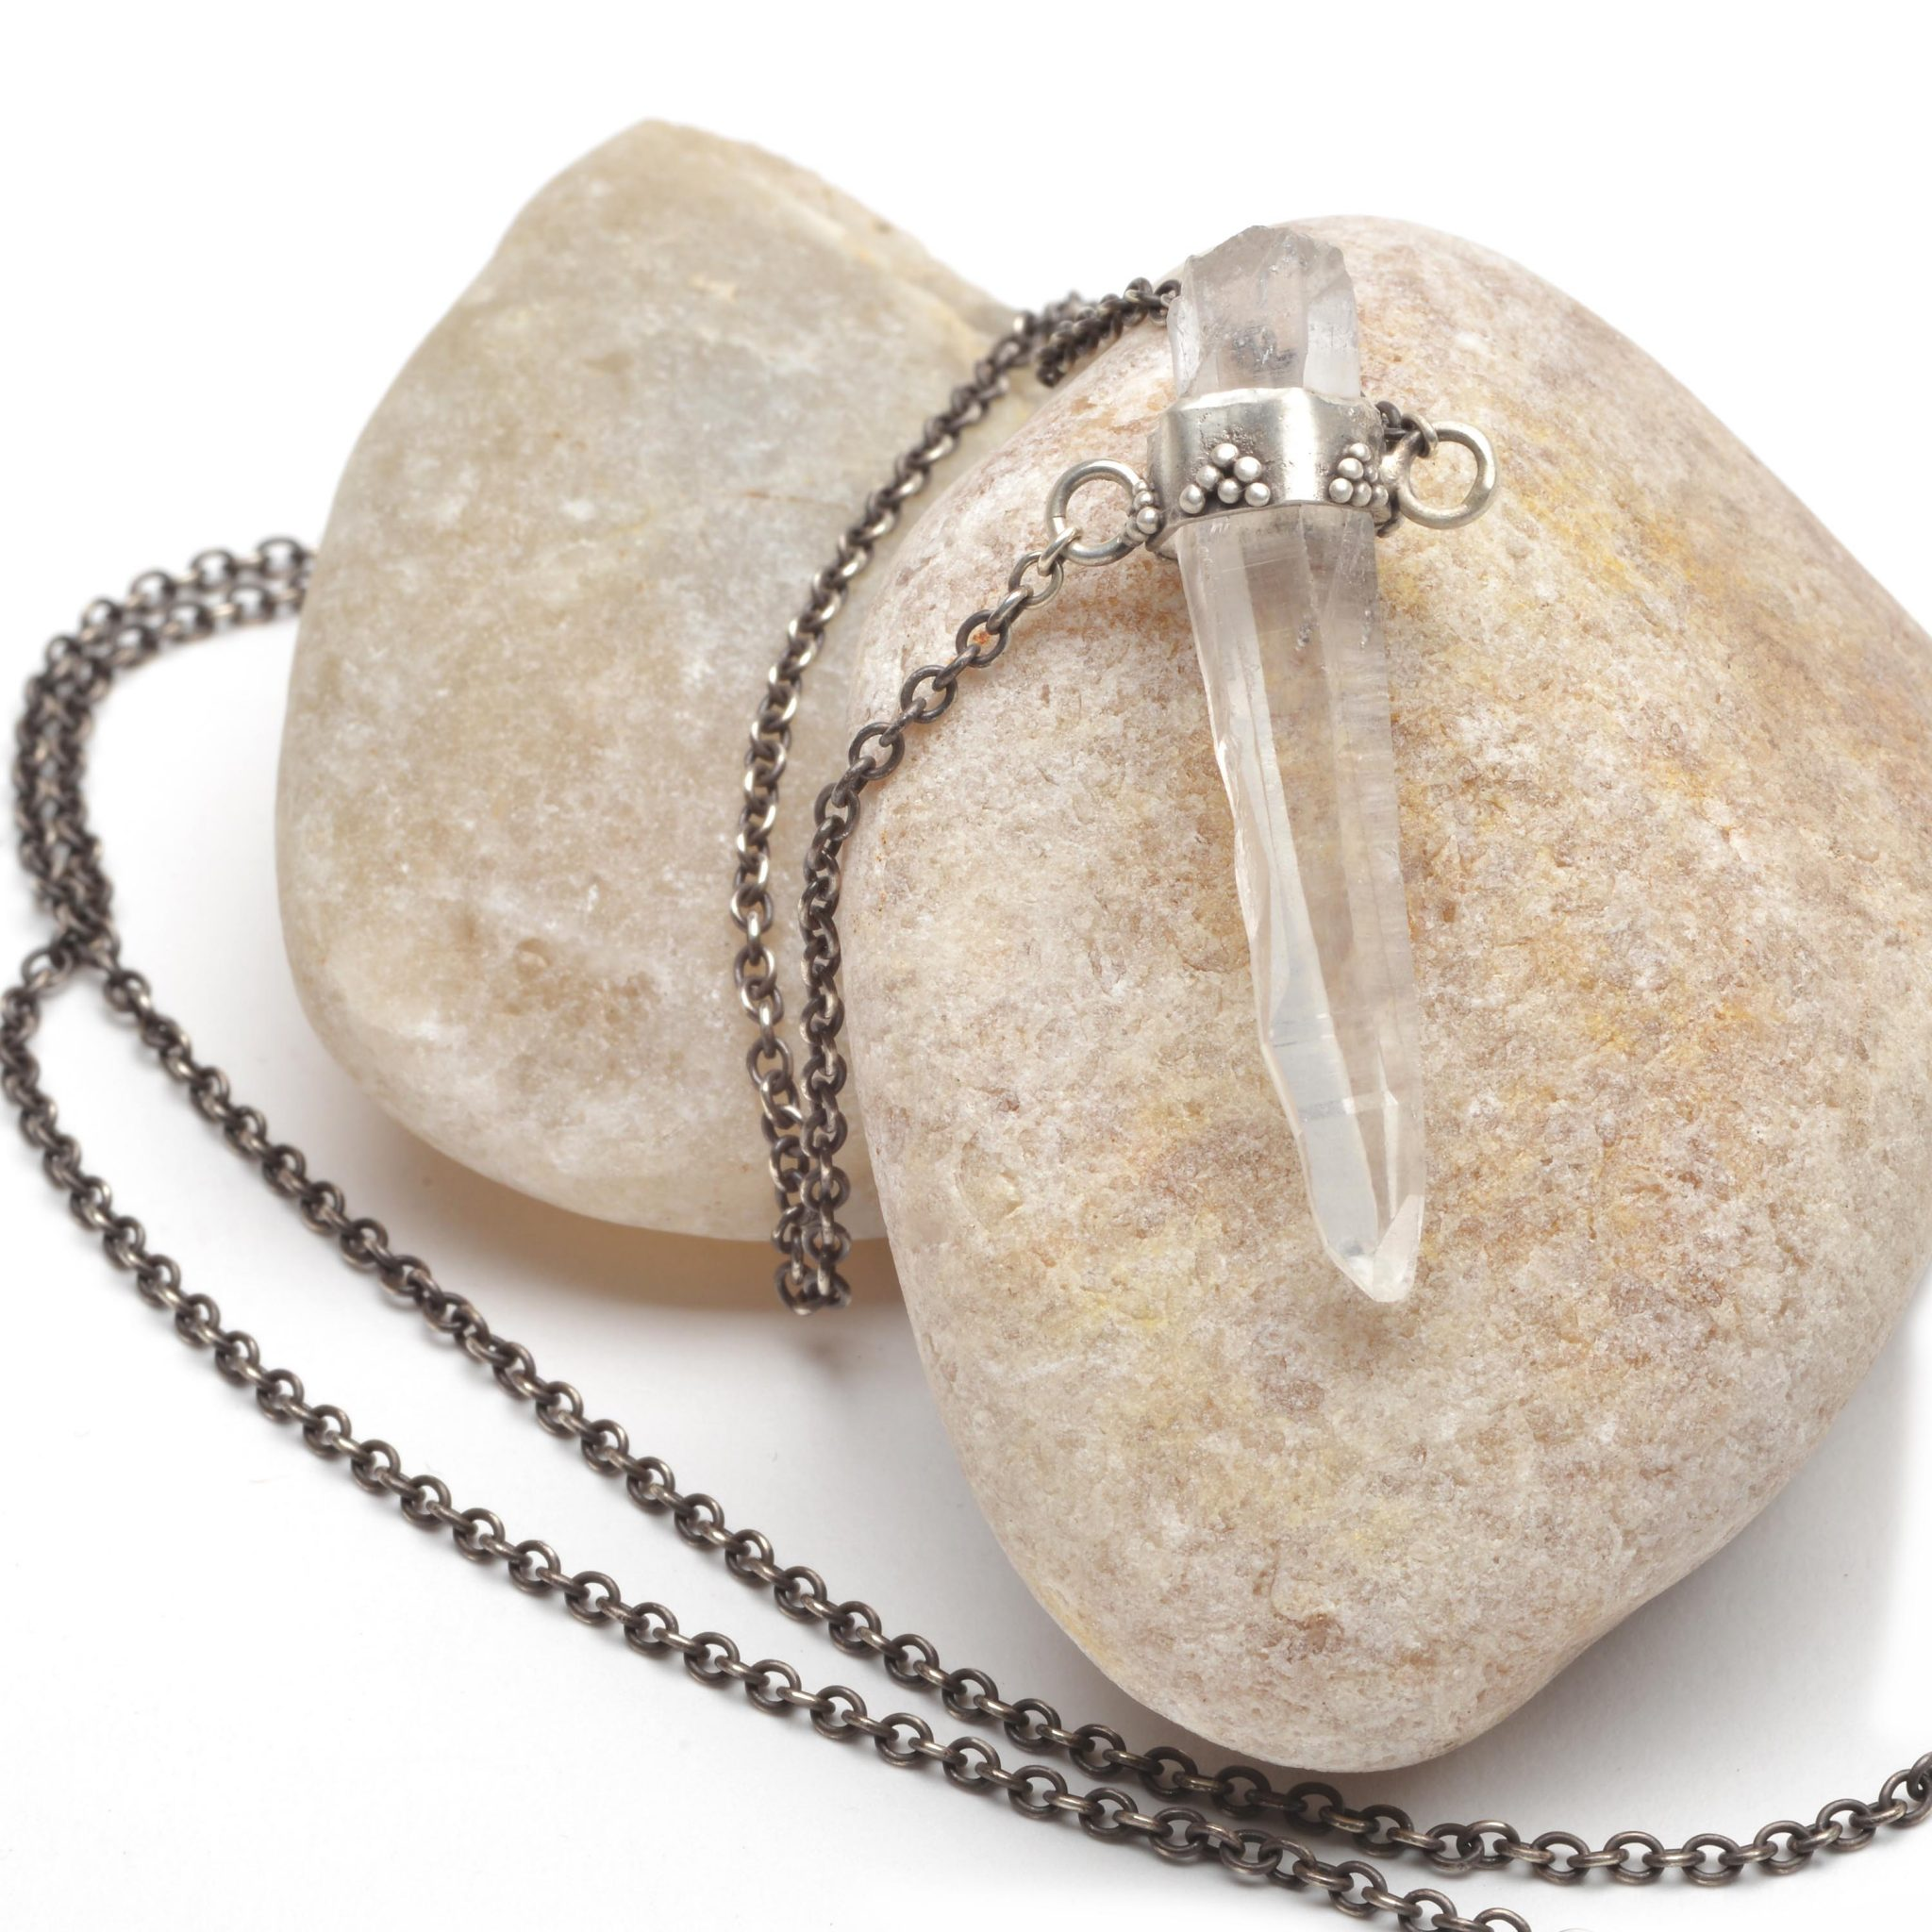 Clear Quartz and Spoon Necklace